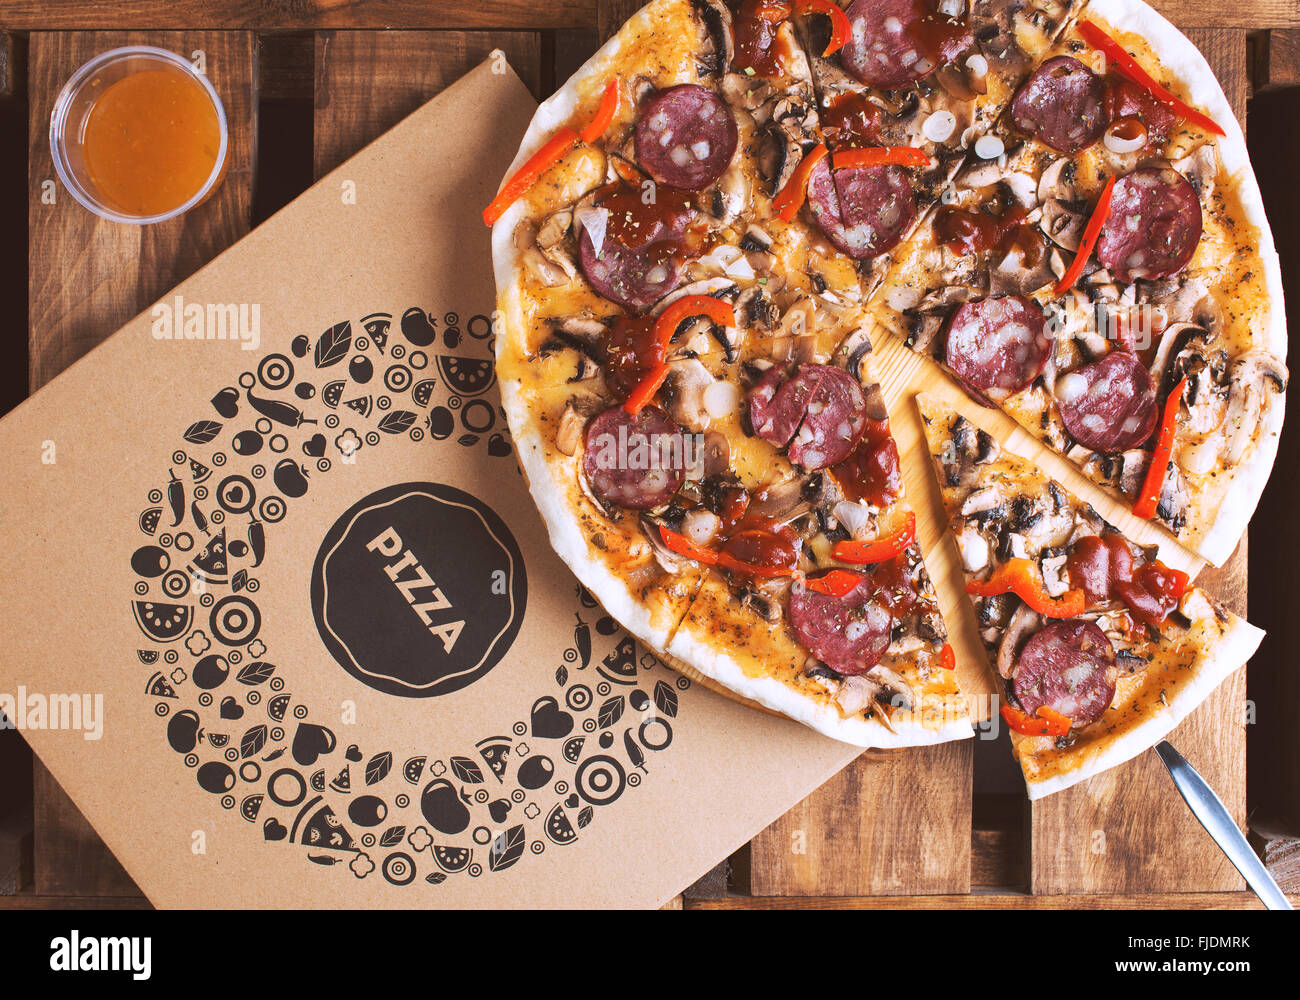 Flat lay shot of delicious italian pizza with meat and vegetables and cardboard delivery box. Pizza delivery service. - Stock Image